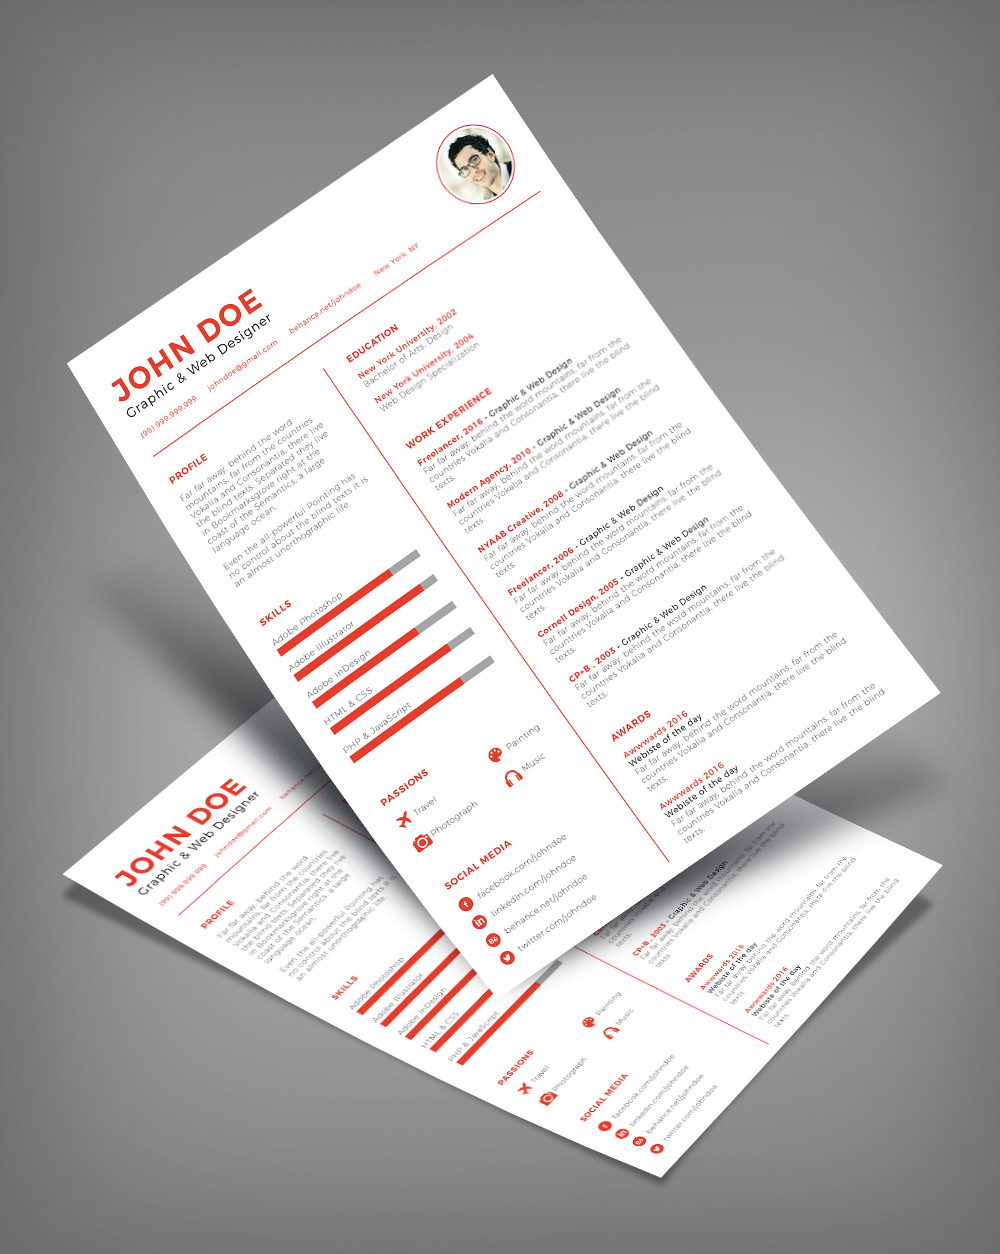 Free Clean  Minimal Resume CV Design Template Ai File